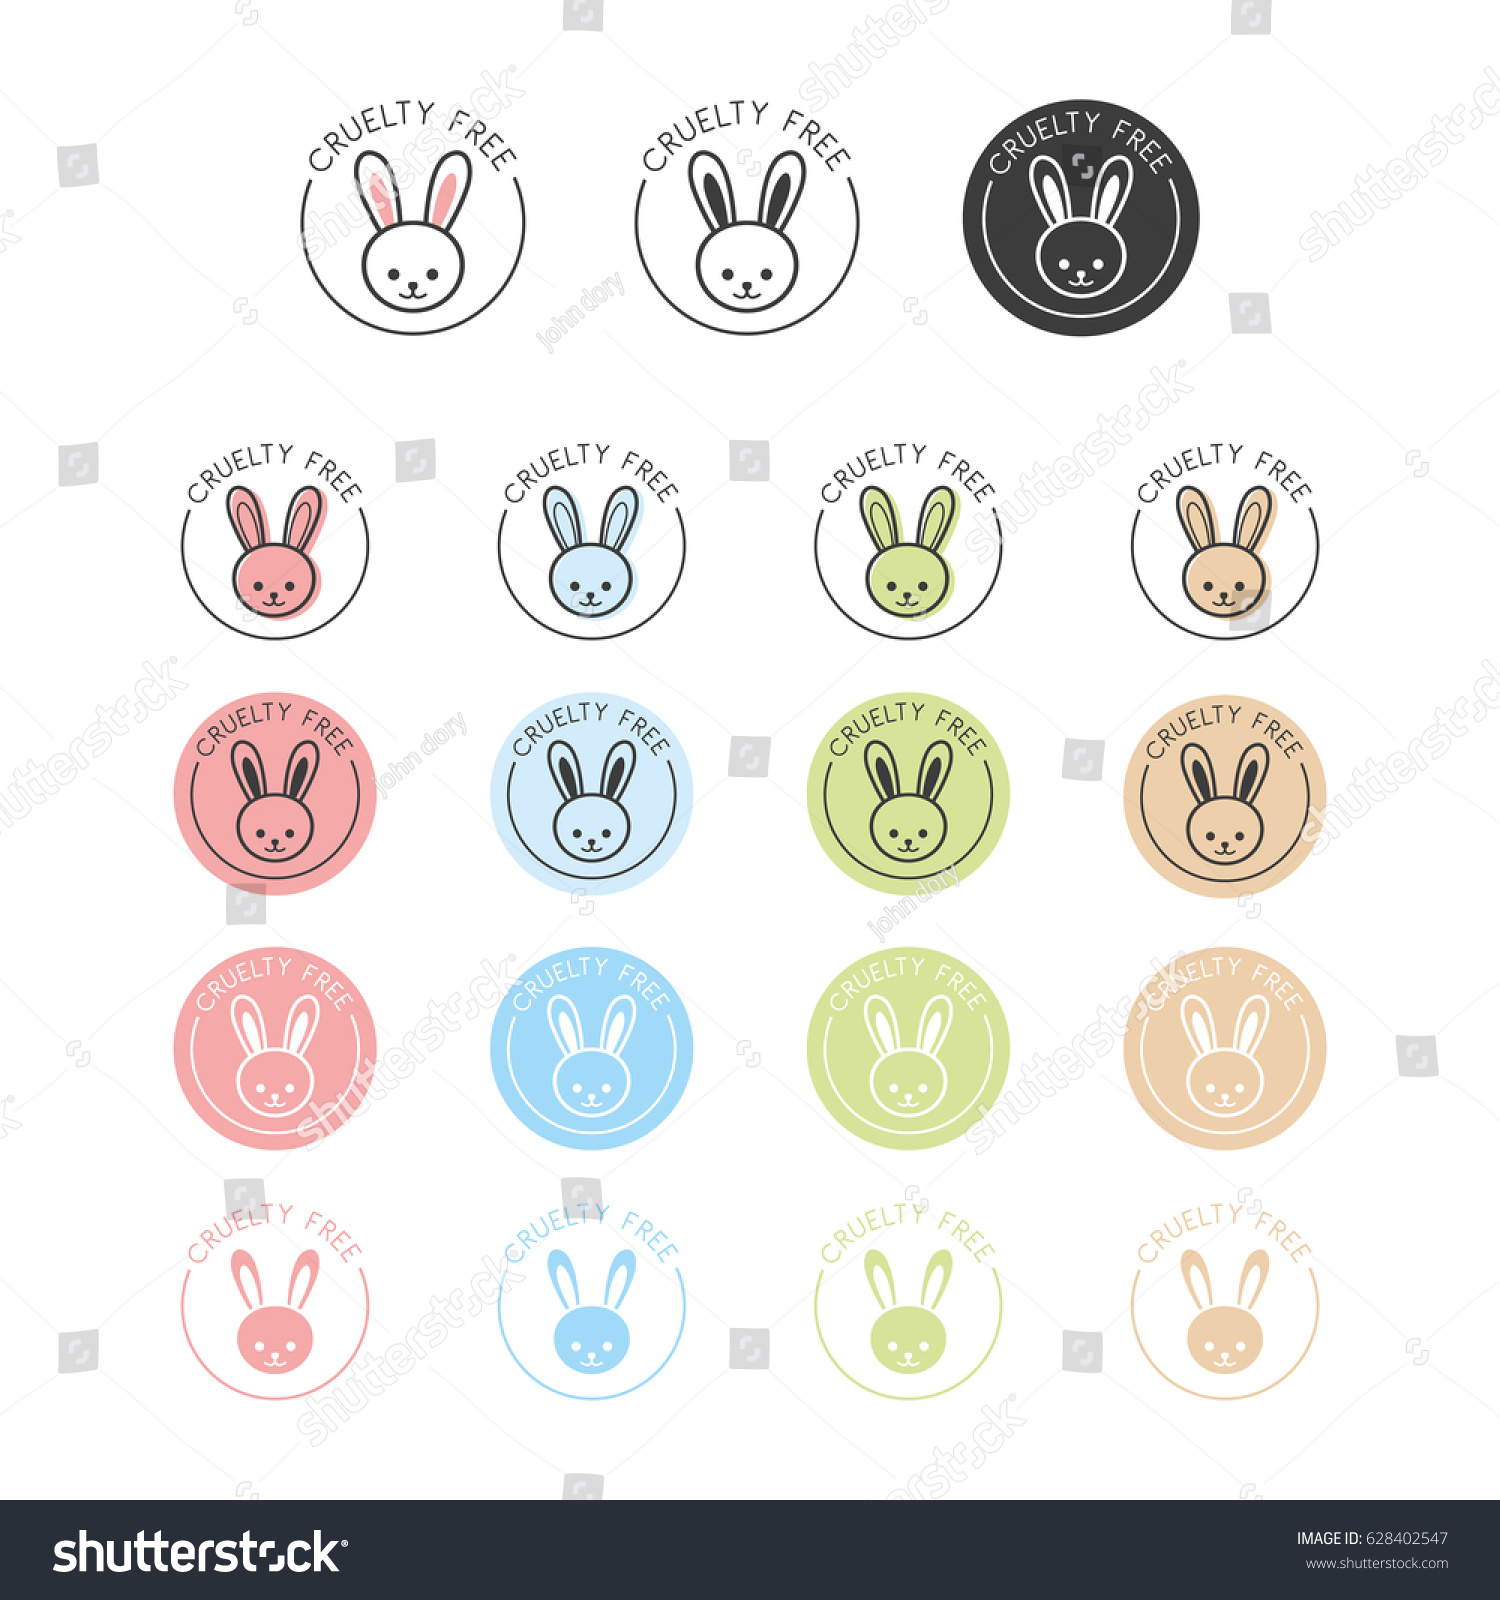 Animal cruelty free symbol can be stock vector 628402547 shutterstock animal cruelty free symbol can be used as sticker logo stamp icon biocorpaavc Gallery